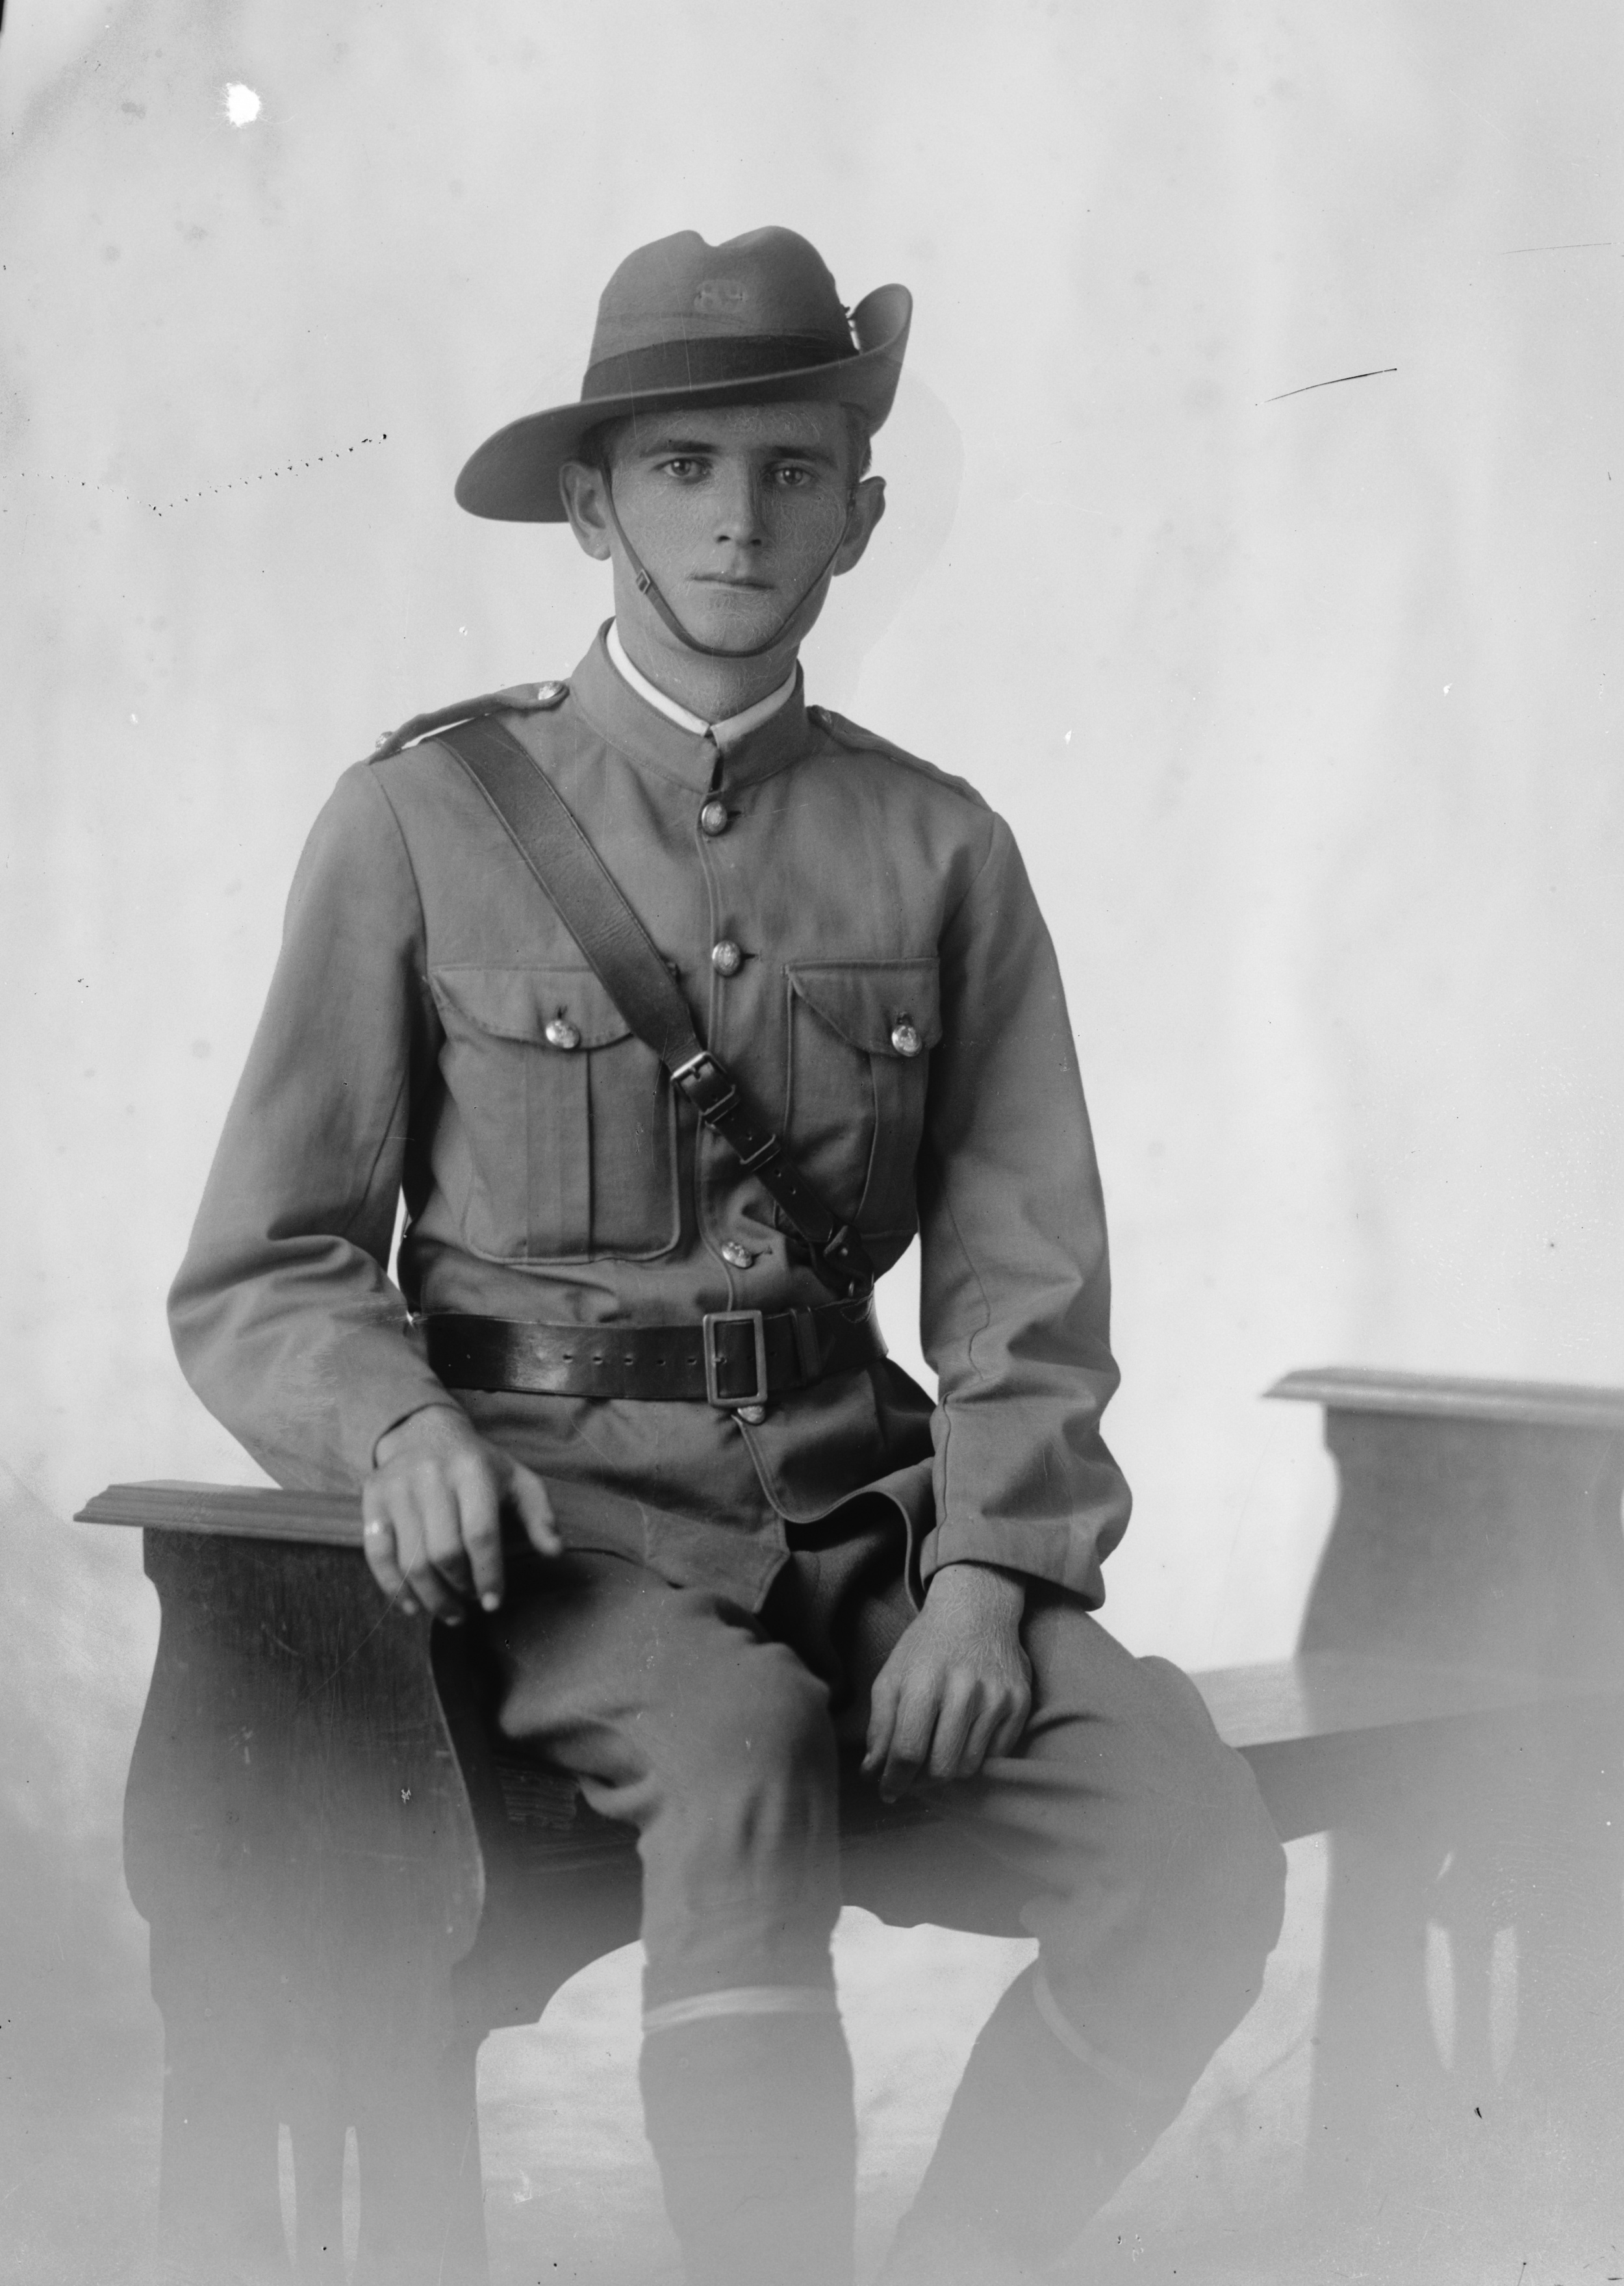 Photographed at the Dease Studio, 117 Barrack Street Perth WA Image courtesy of the State Library of Western Australia: 108130PD